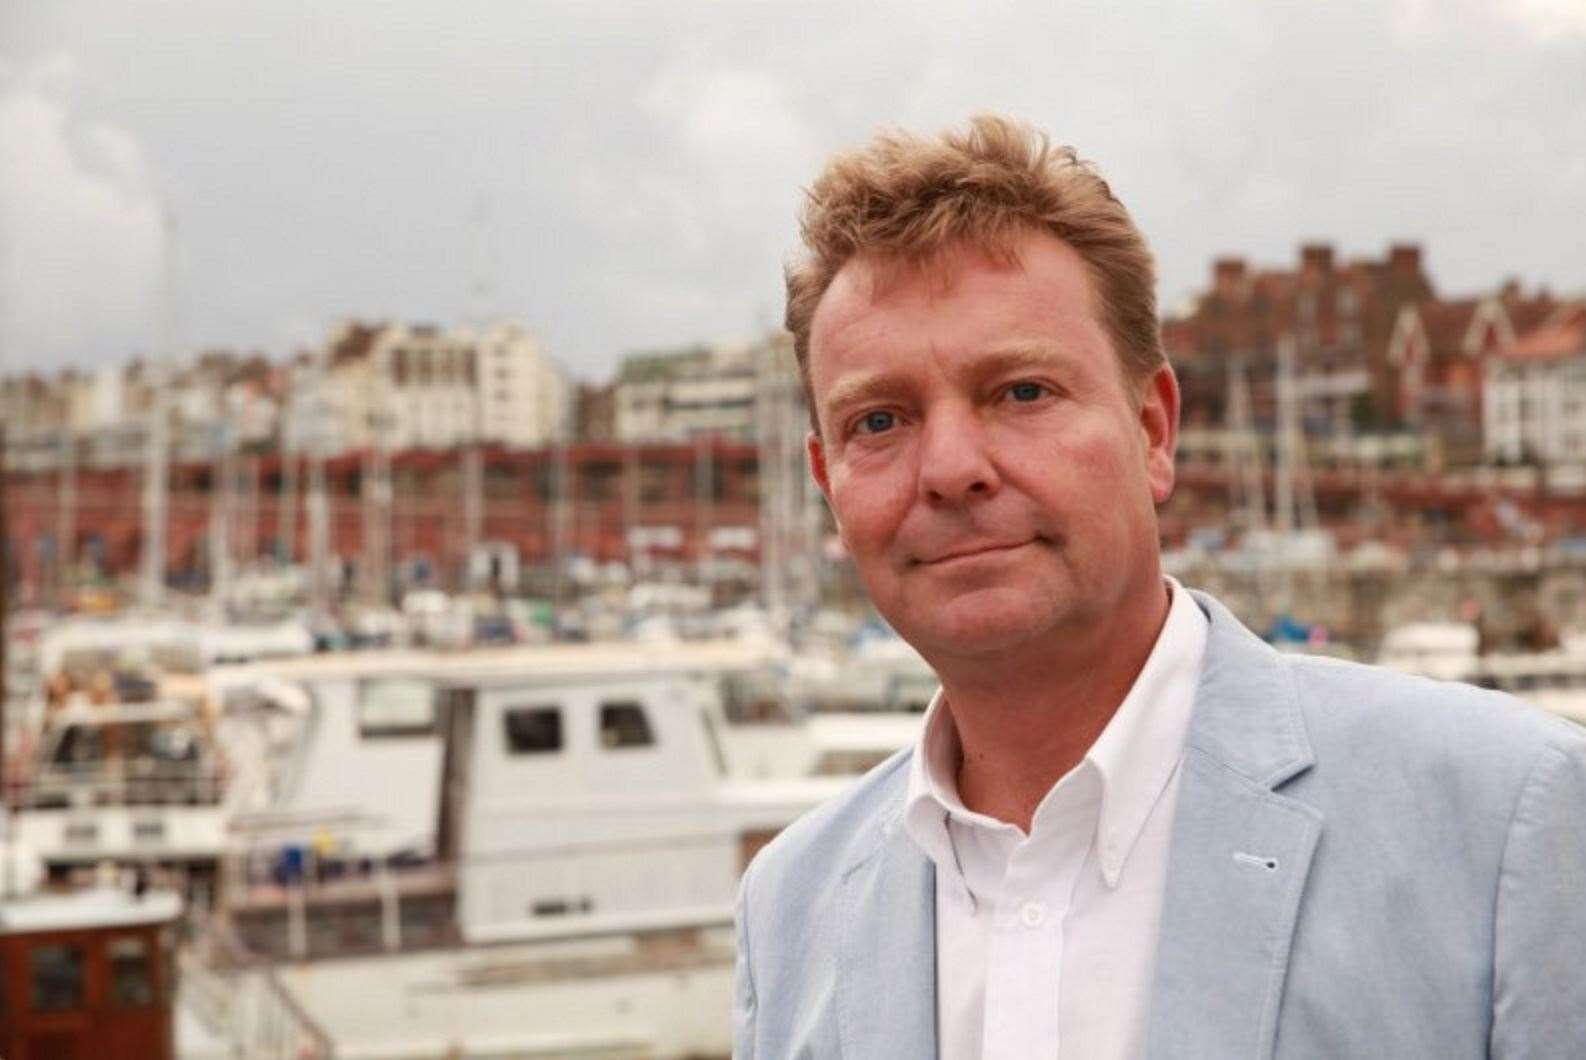 Craig Mackinlay believes the port would be better transformed into a marina village